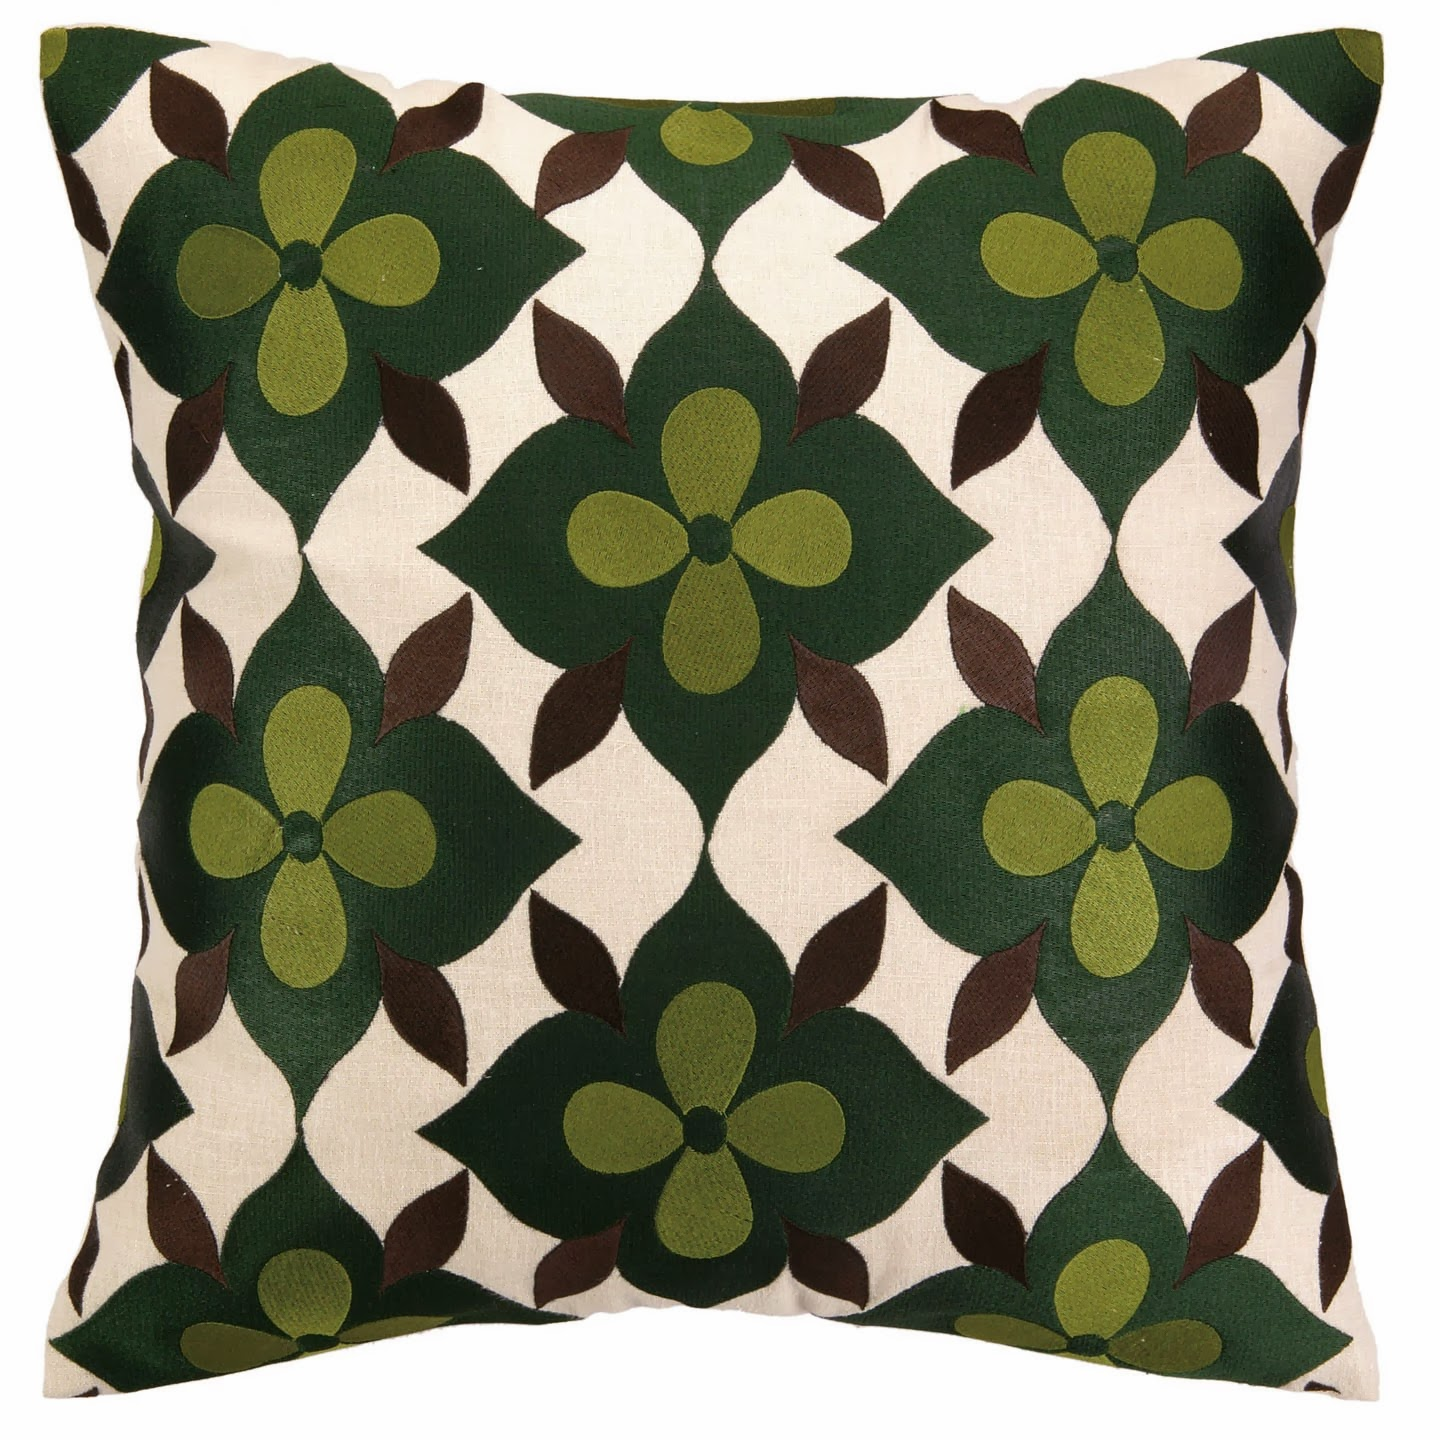 COCOCOZY Coco's Flower embroidered pillow in green, avocado and brown